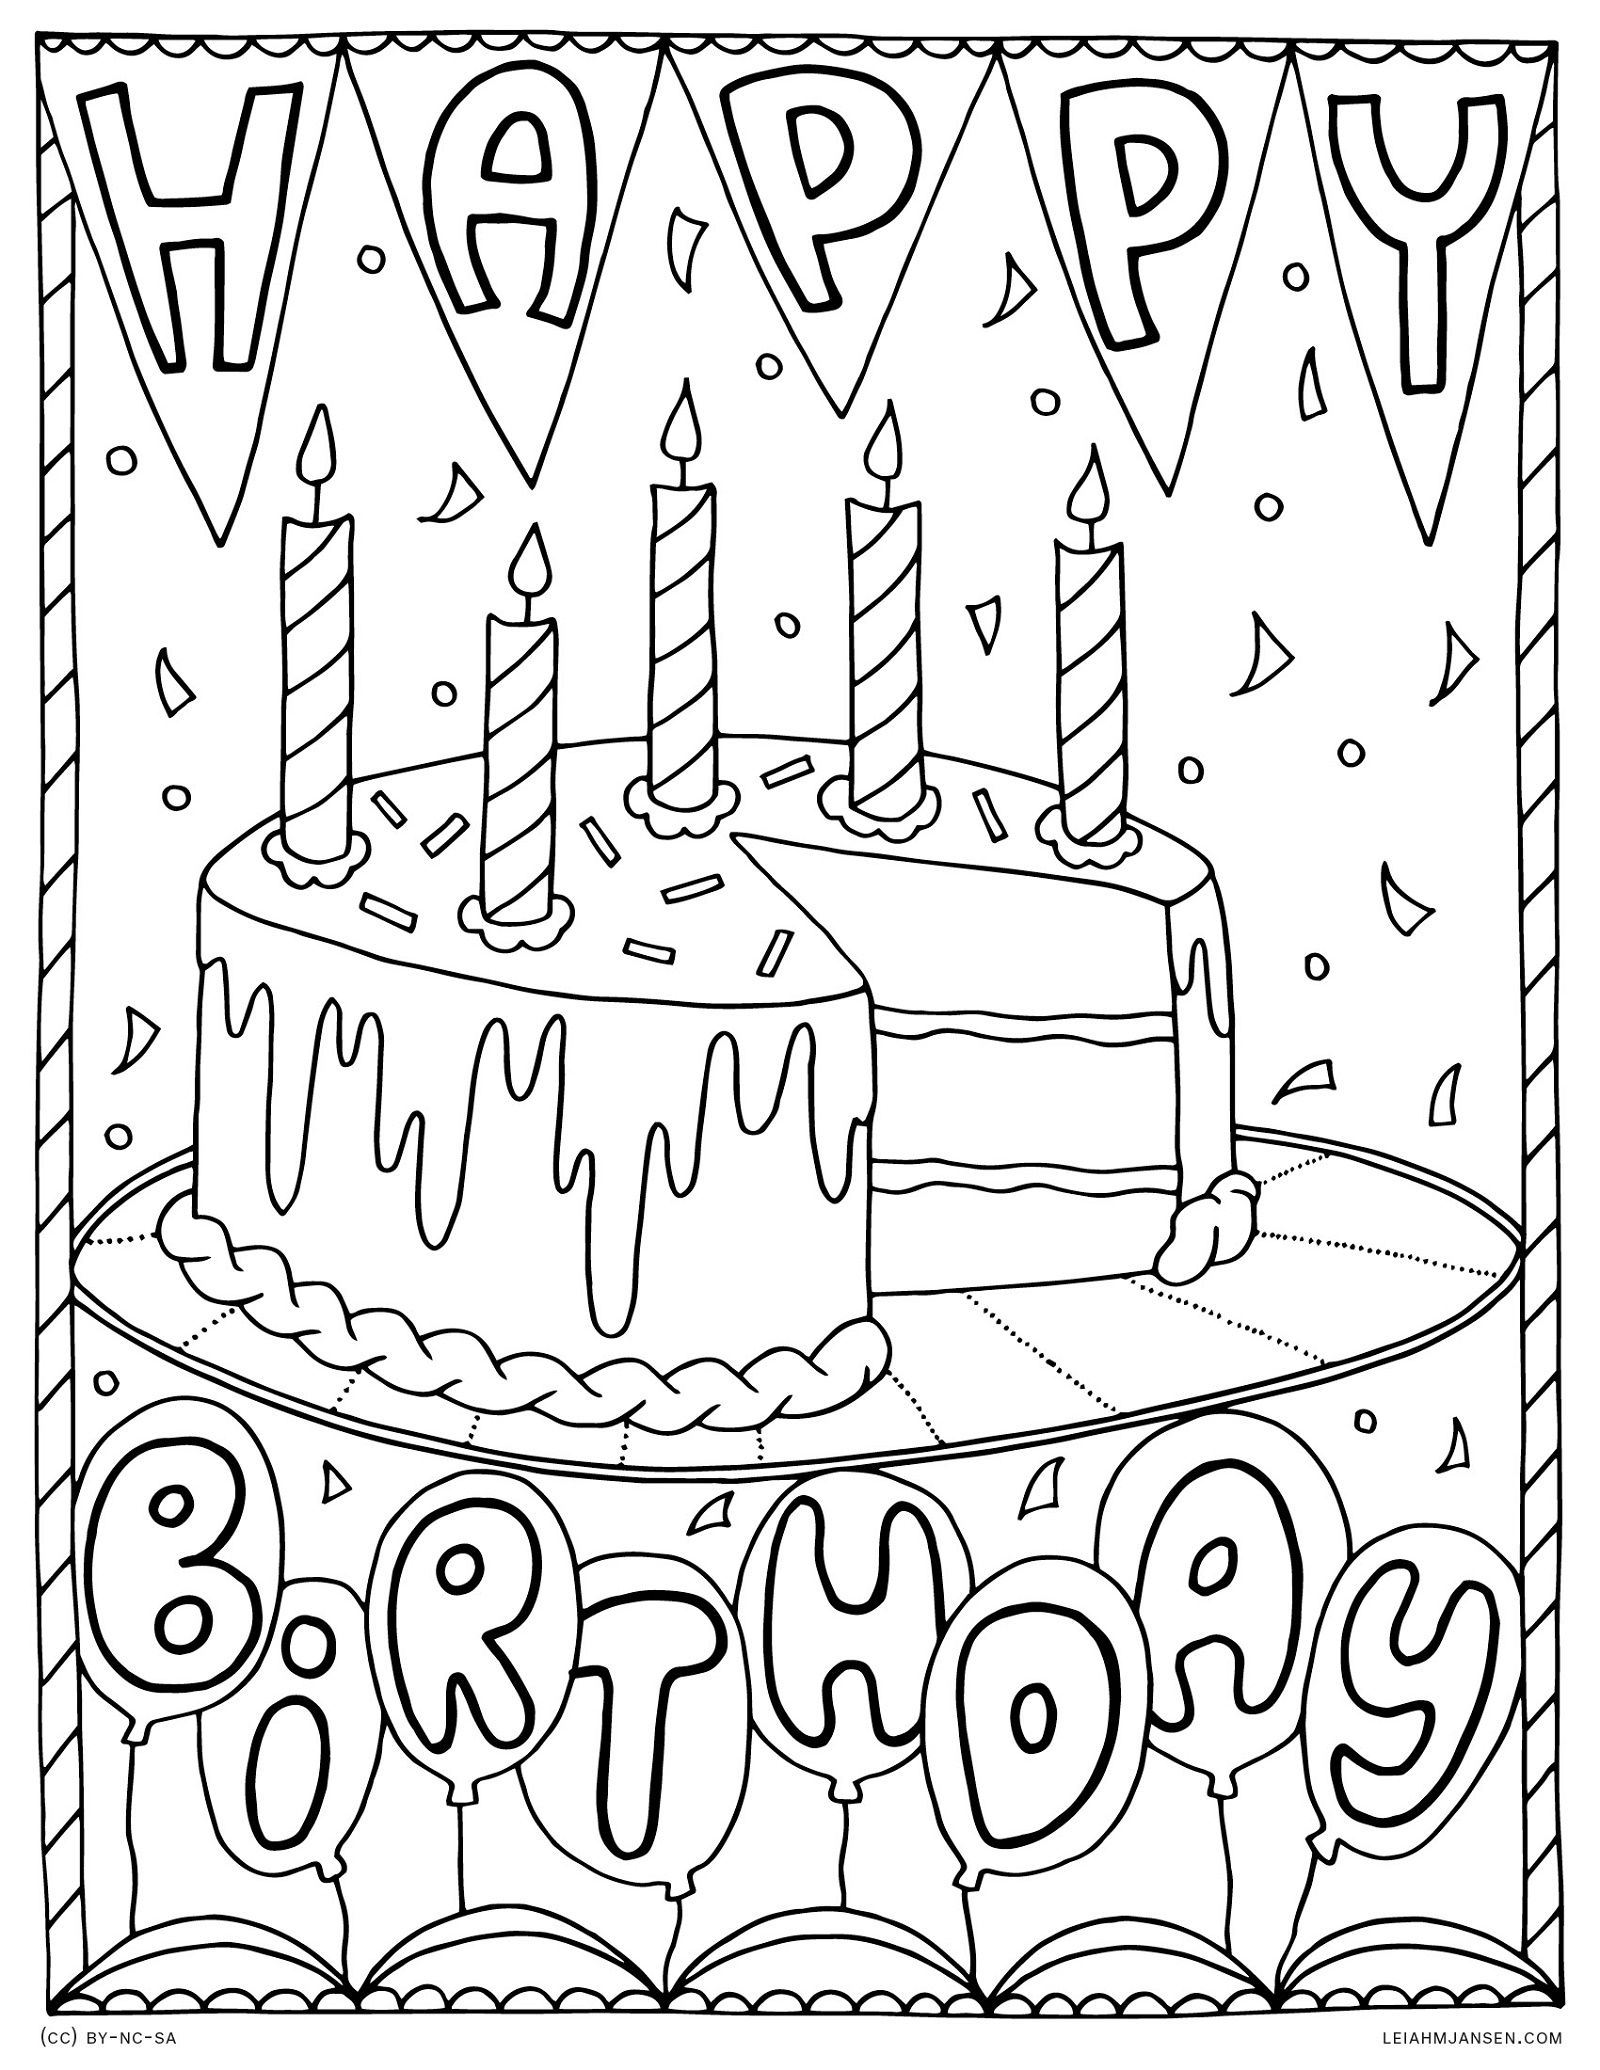 Happy Birthday Coloring Pages K5 Worksheets Birthday Coloring Pages Happy Birthday Coloring Pages Spring Coloring Pages